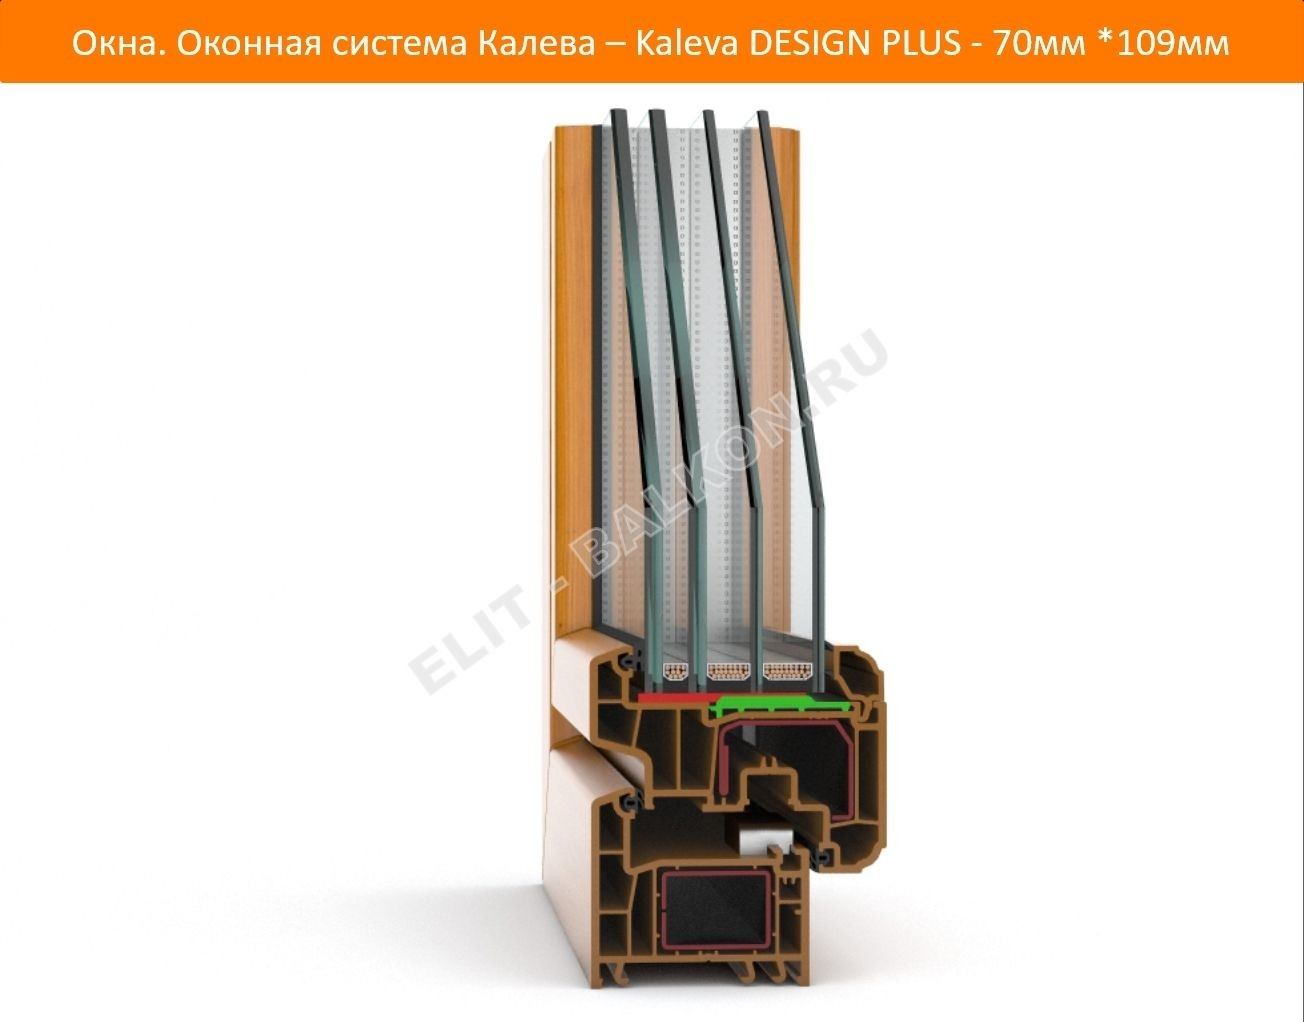 Okna. Okonnaya sistema Kaleva Kaleva DESIGN PLUS 70mm 109mm 2 1 - DESIGN PLUS – на страже вашего покоя!